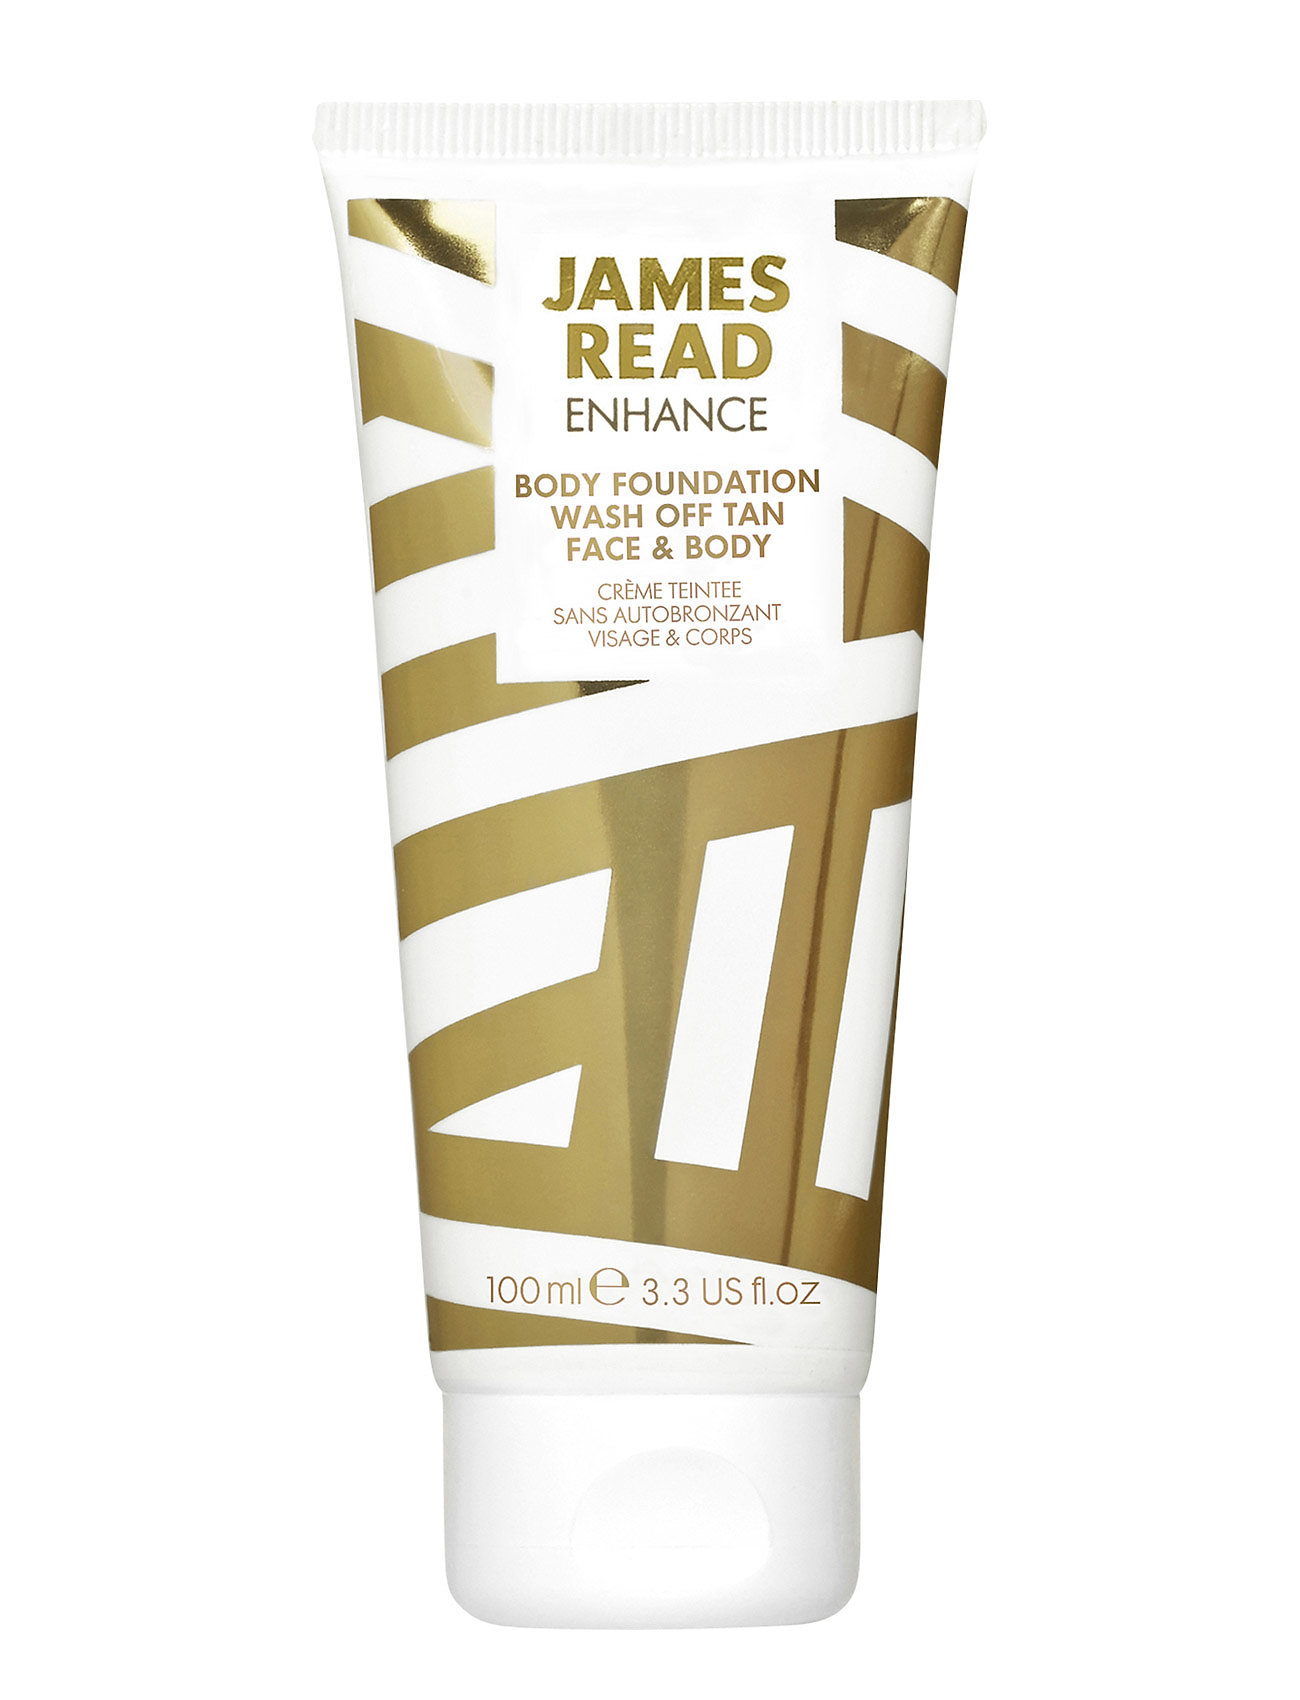 James Read Body Foundation Wash Off Tan Face & Body - CLEAR